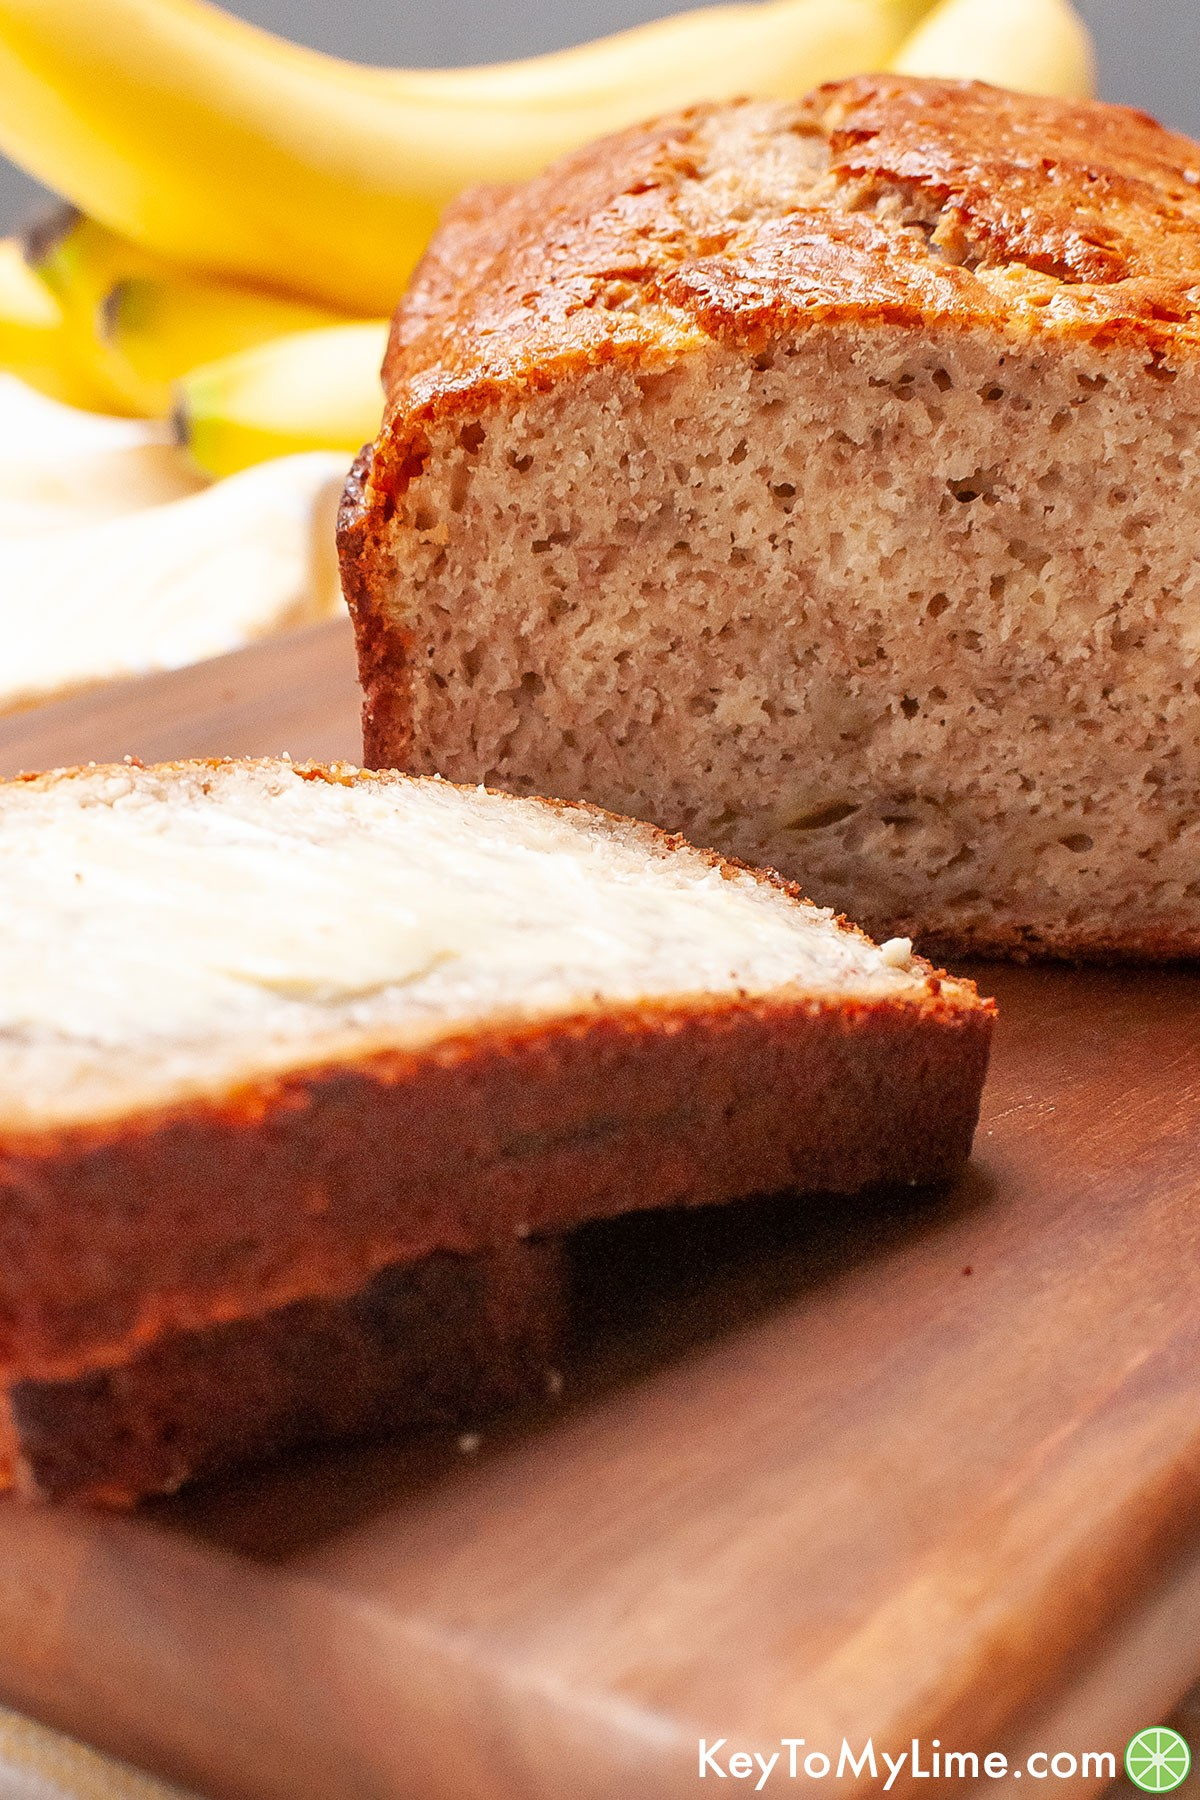 A loaf of banana bread with buttered slices on a wood board.